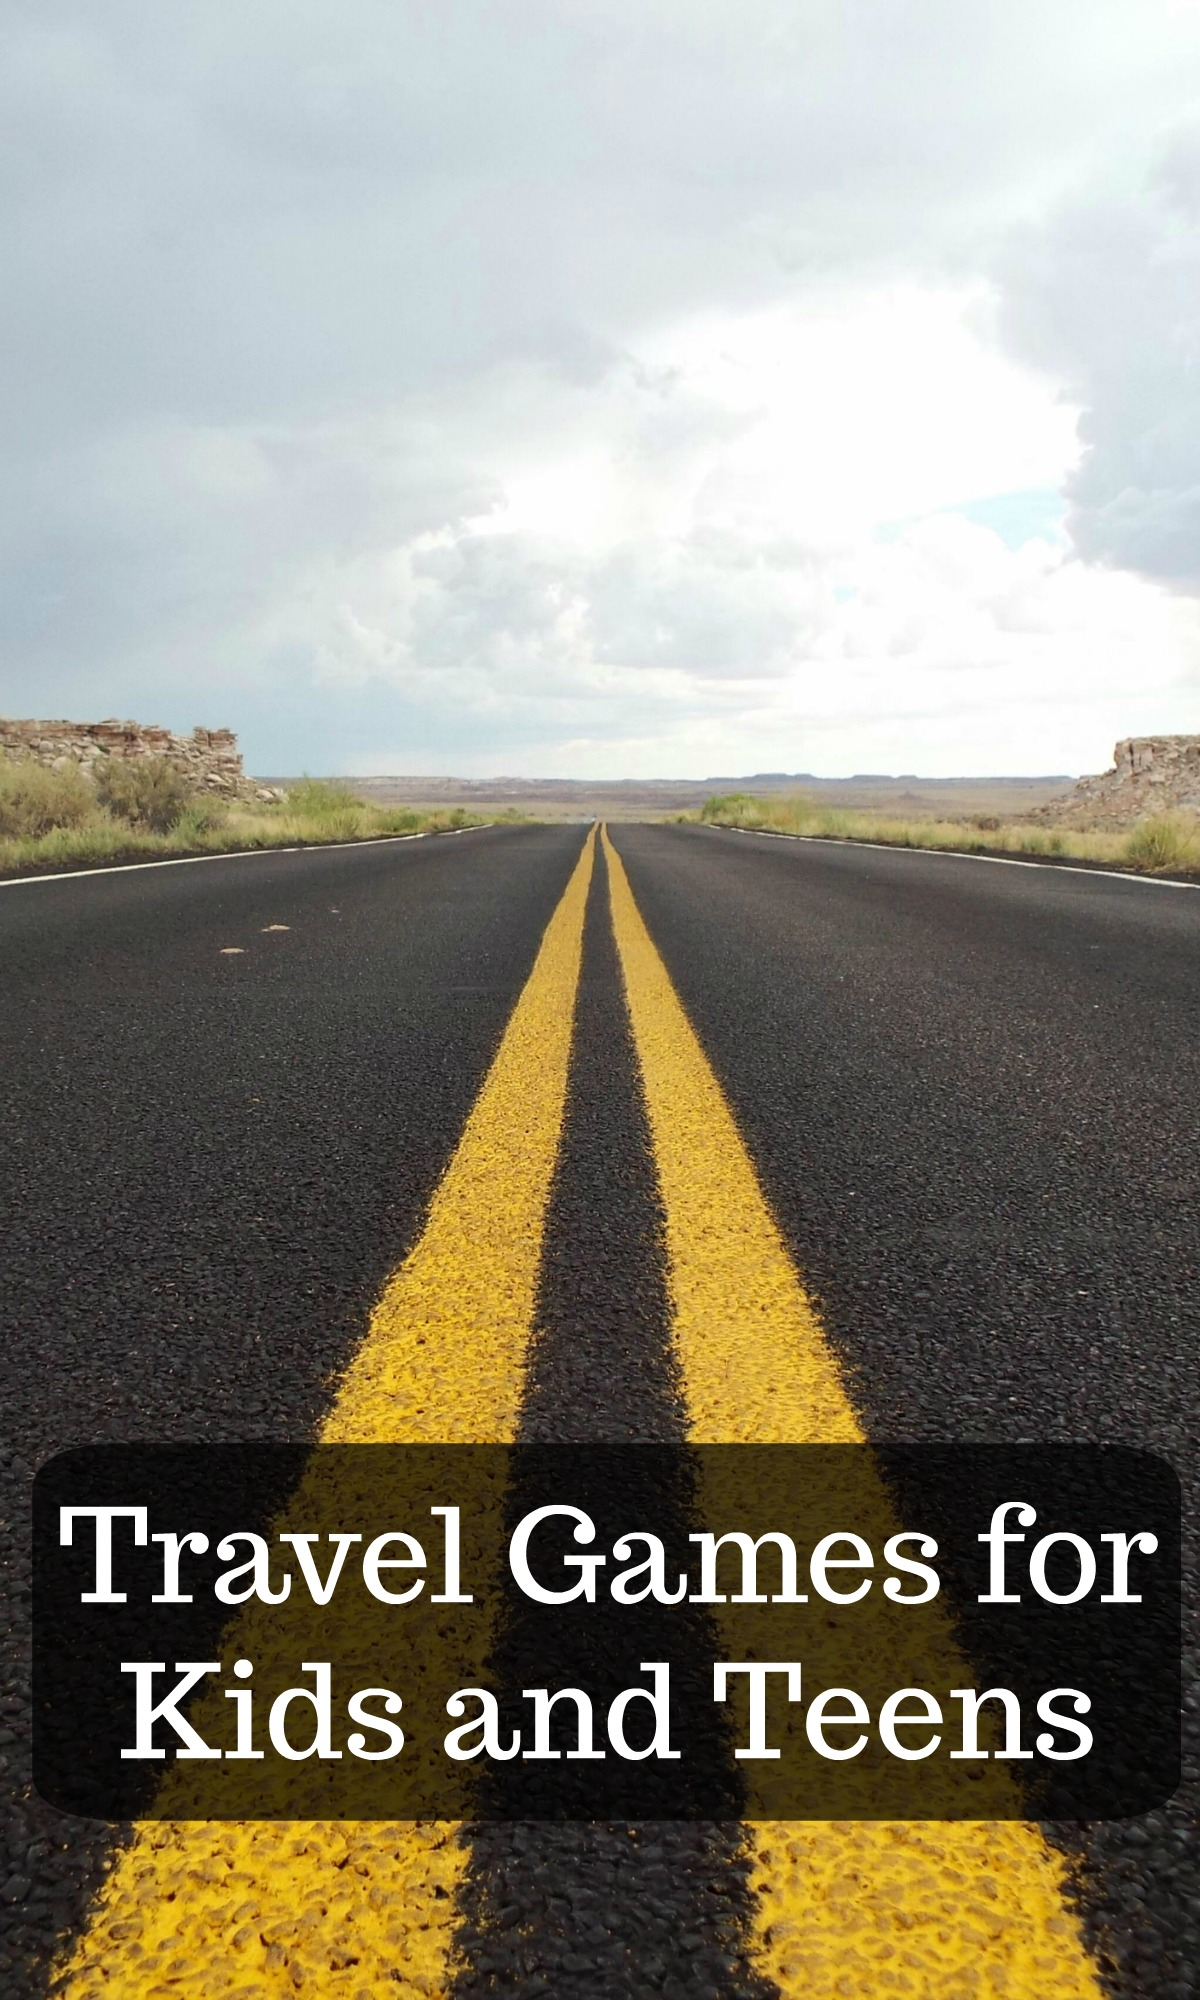 Travel Games for Kids and Teens